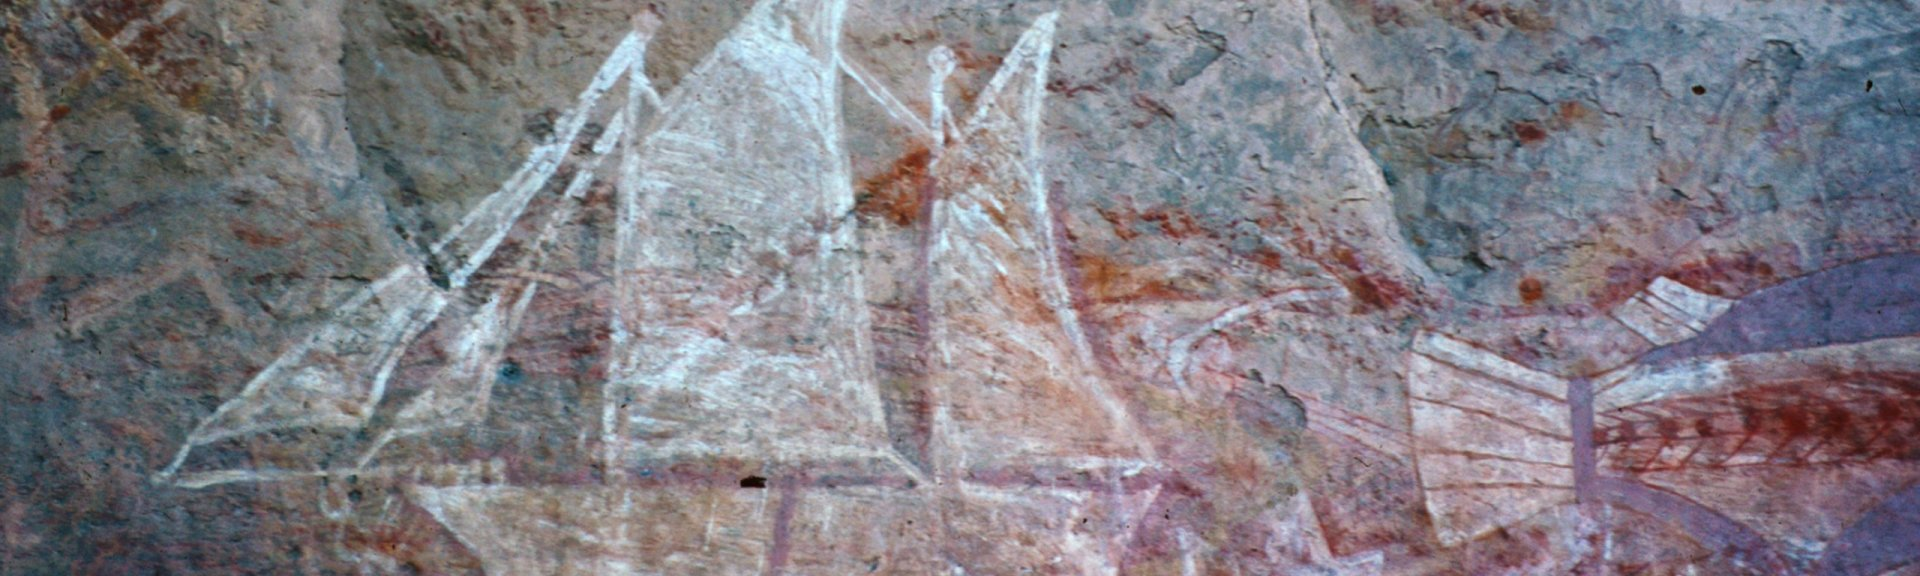 First contact rock art, Nanguluwurr, Burrungkuy (Nourlangie). Photo: Parks Australia.